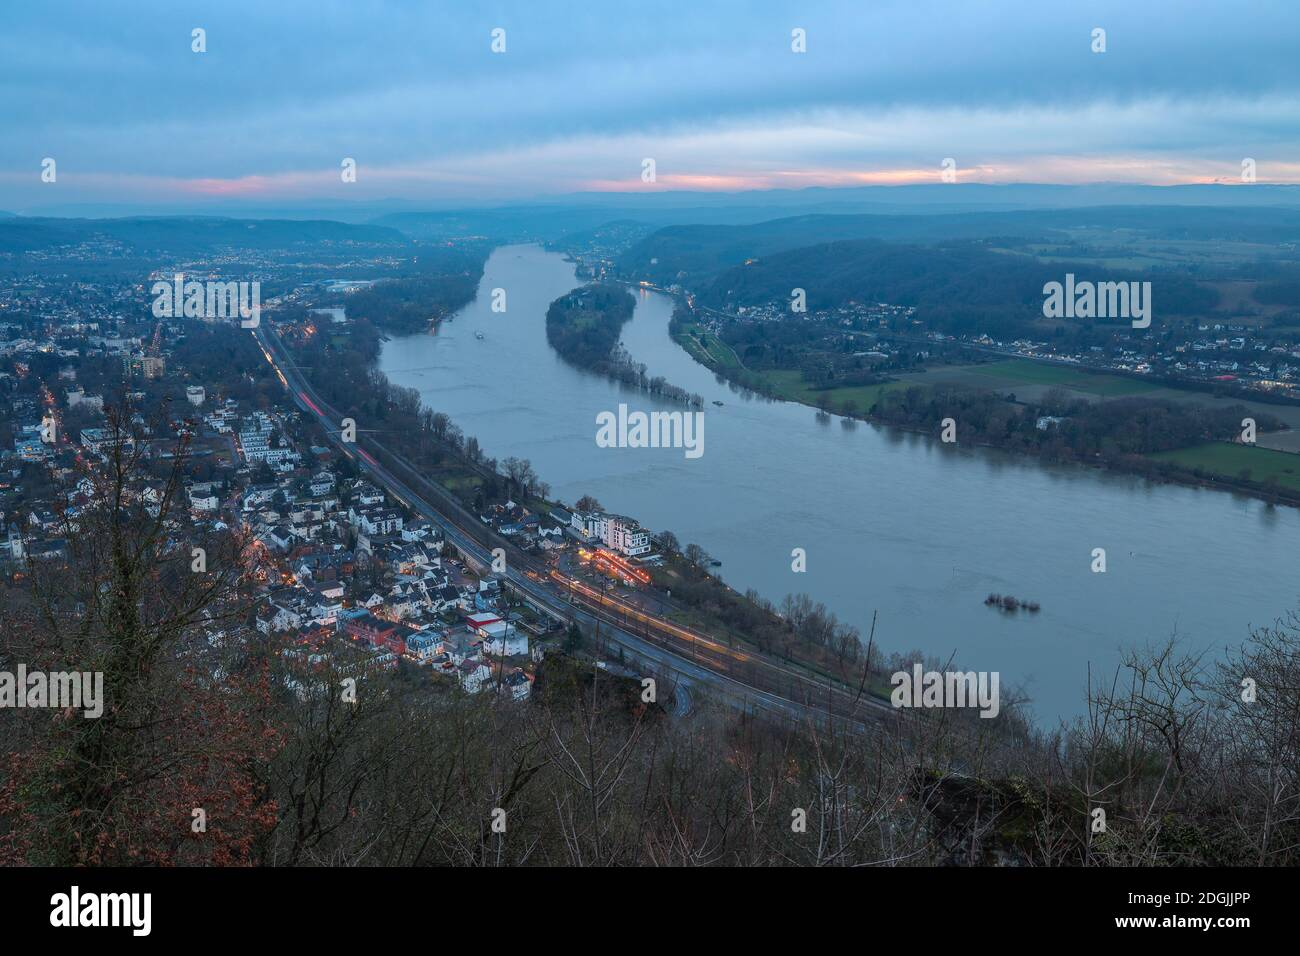 View of Königswinter in Germany along the Rhine River at sunset with cloudy sky. Stock Photo